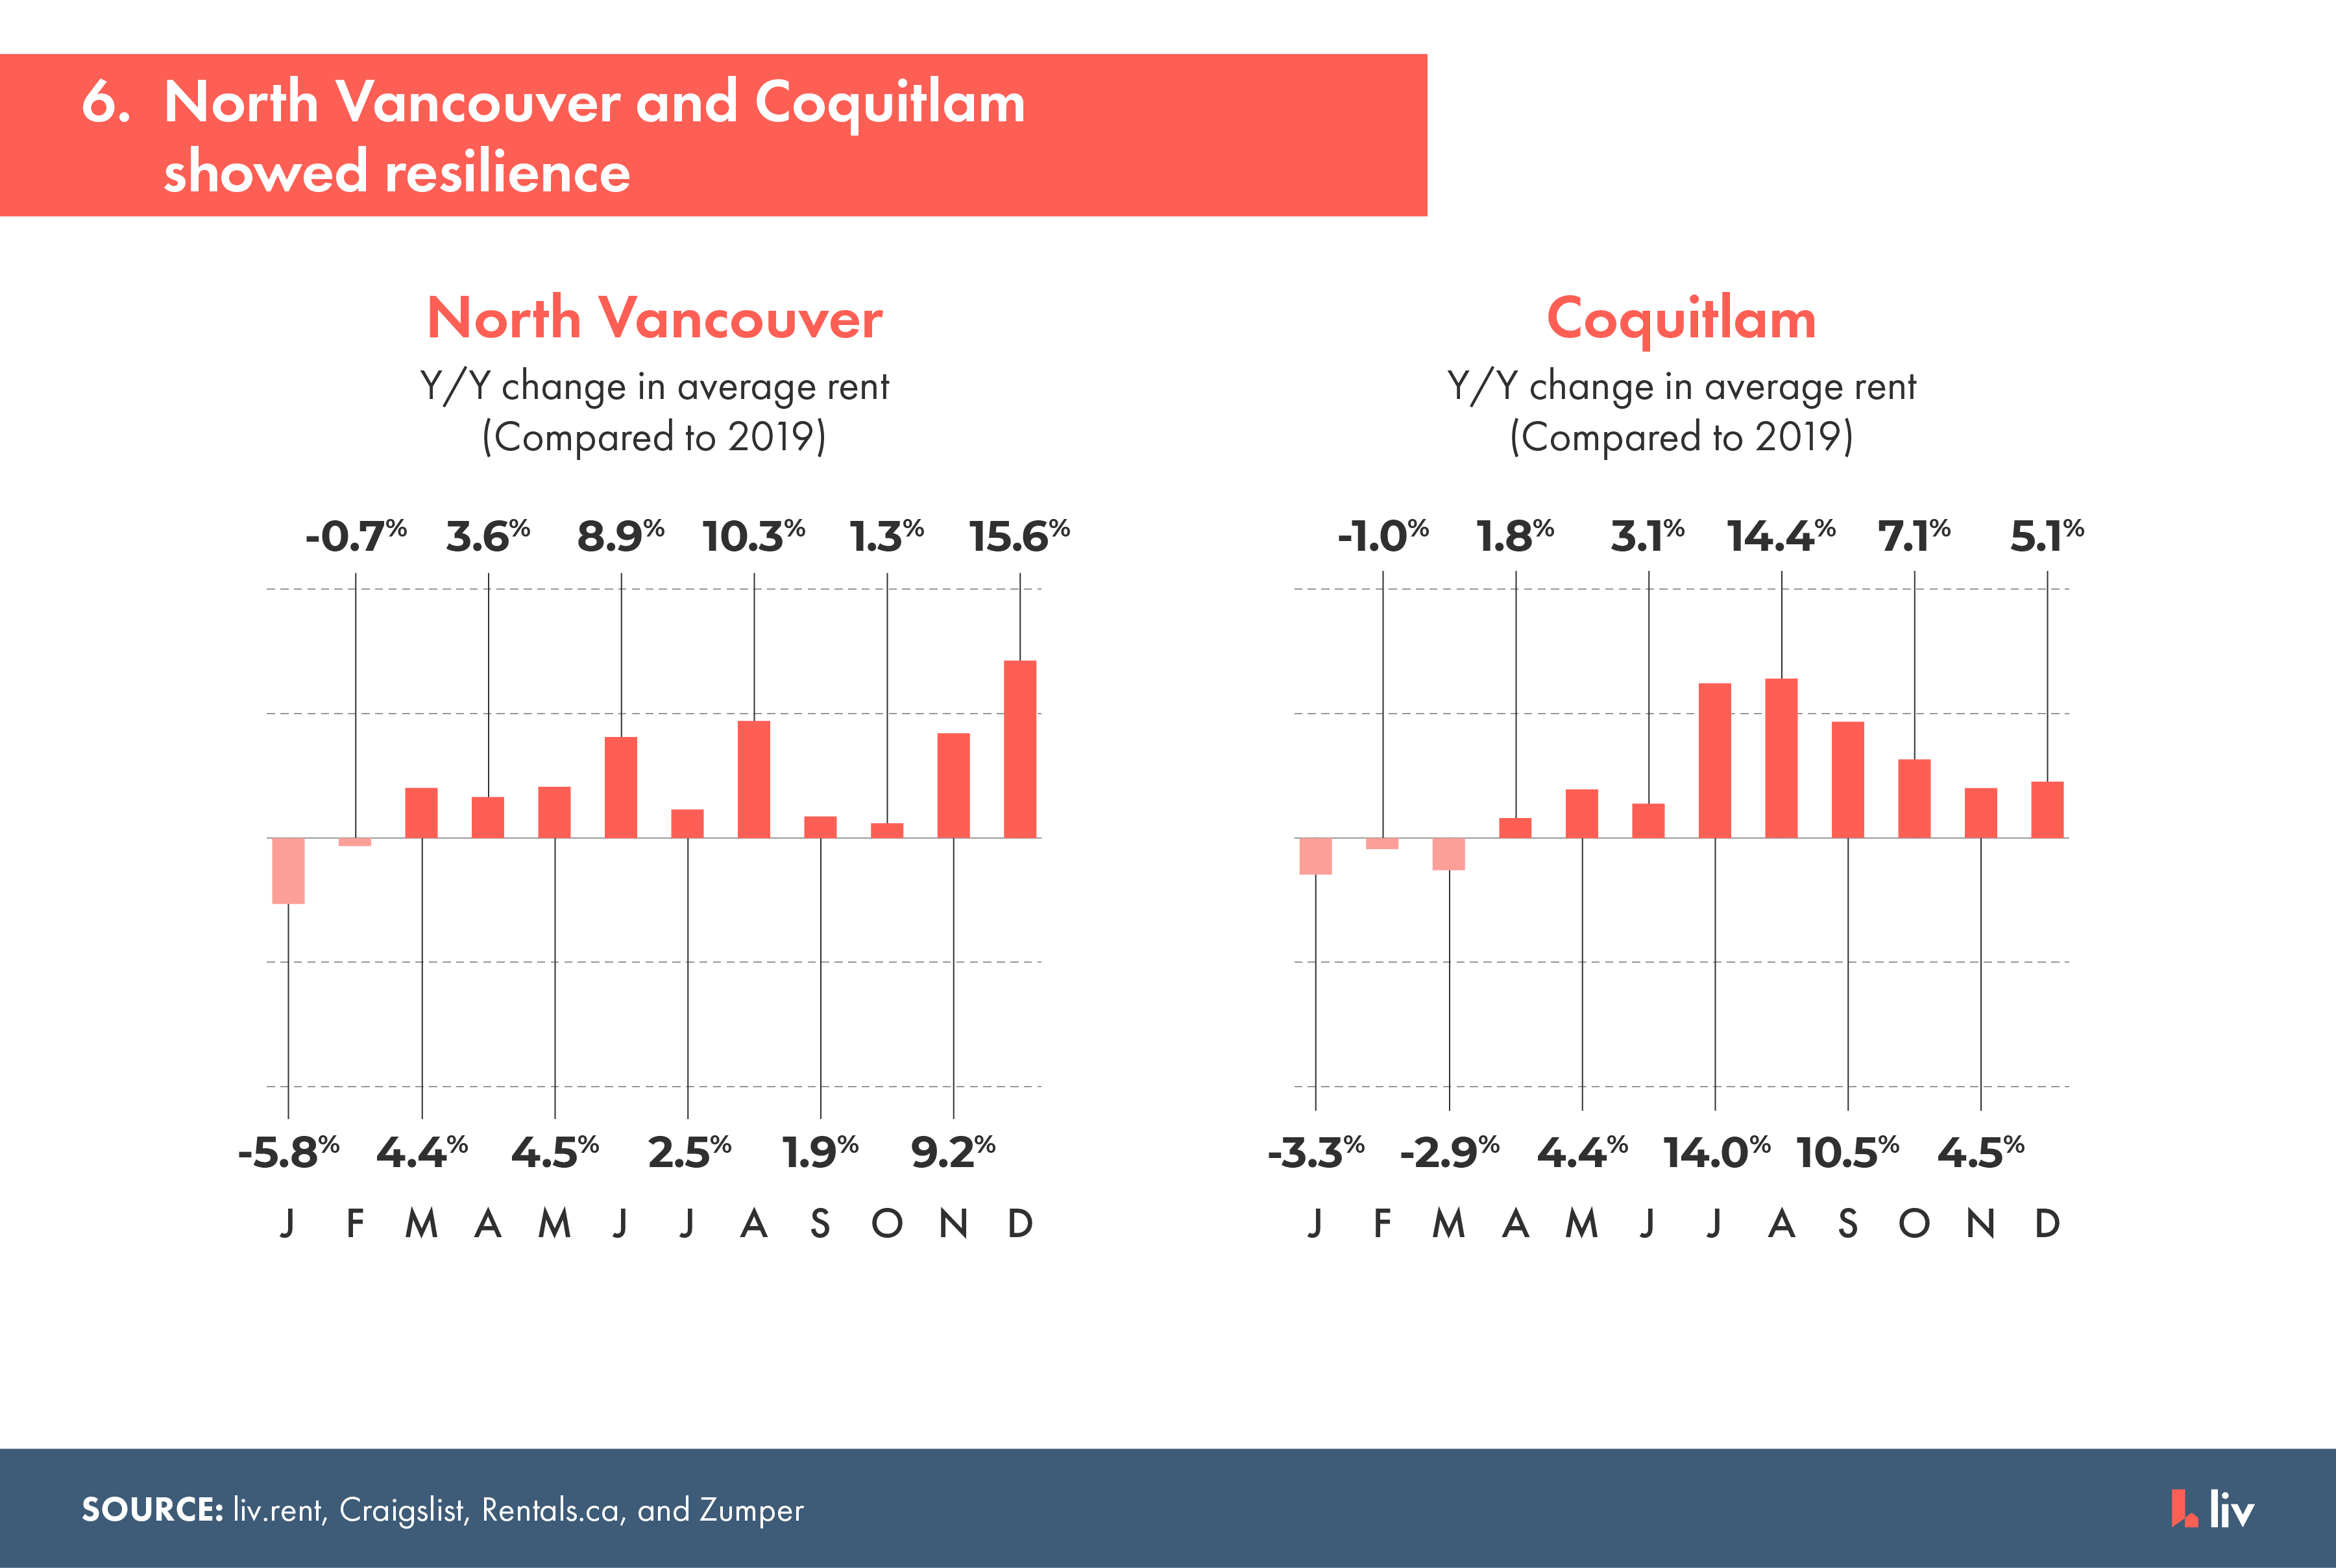 north vancouver and coquitlam rental markets showed the greatest resilience during 2020